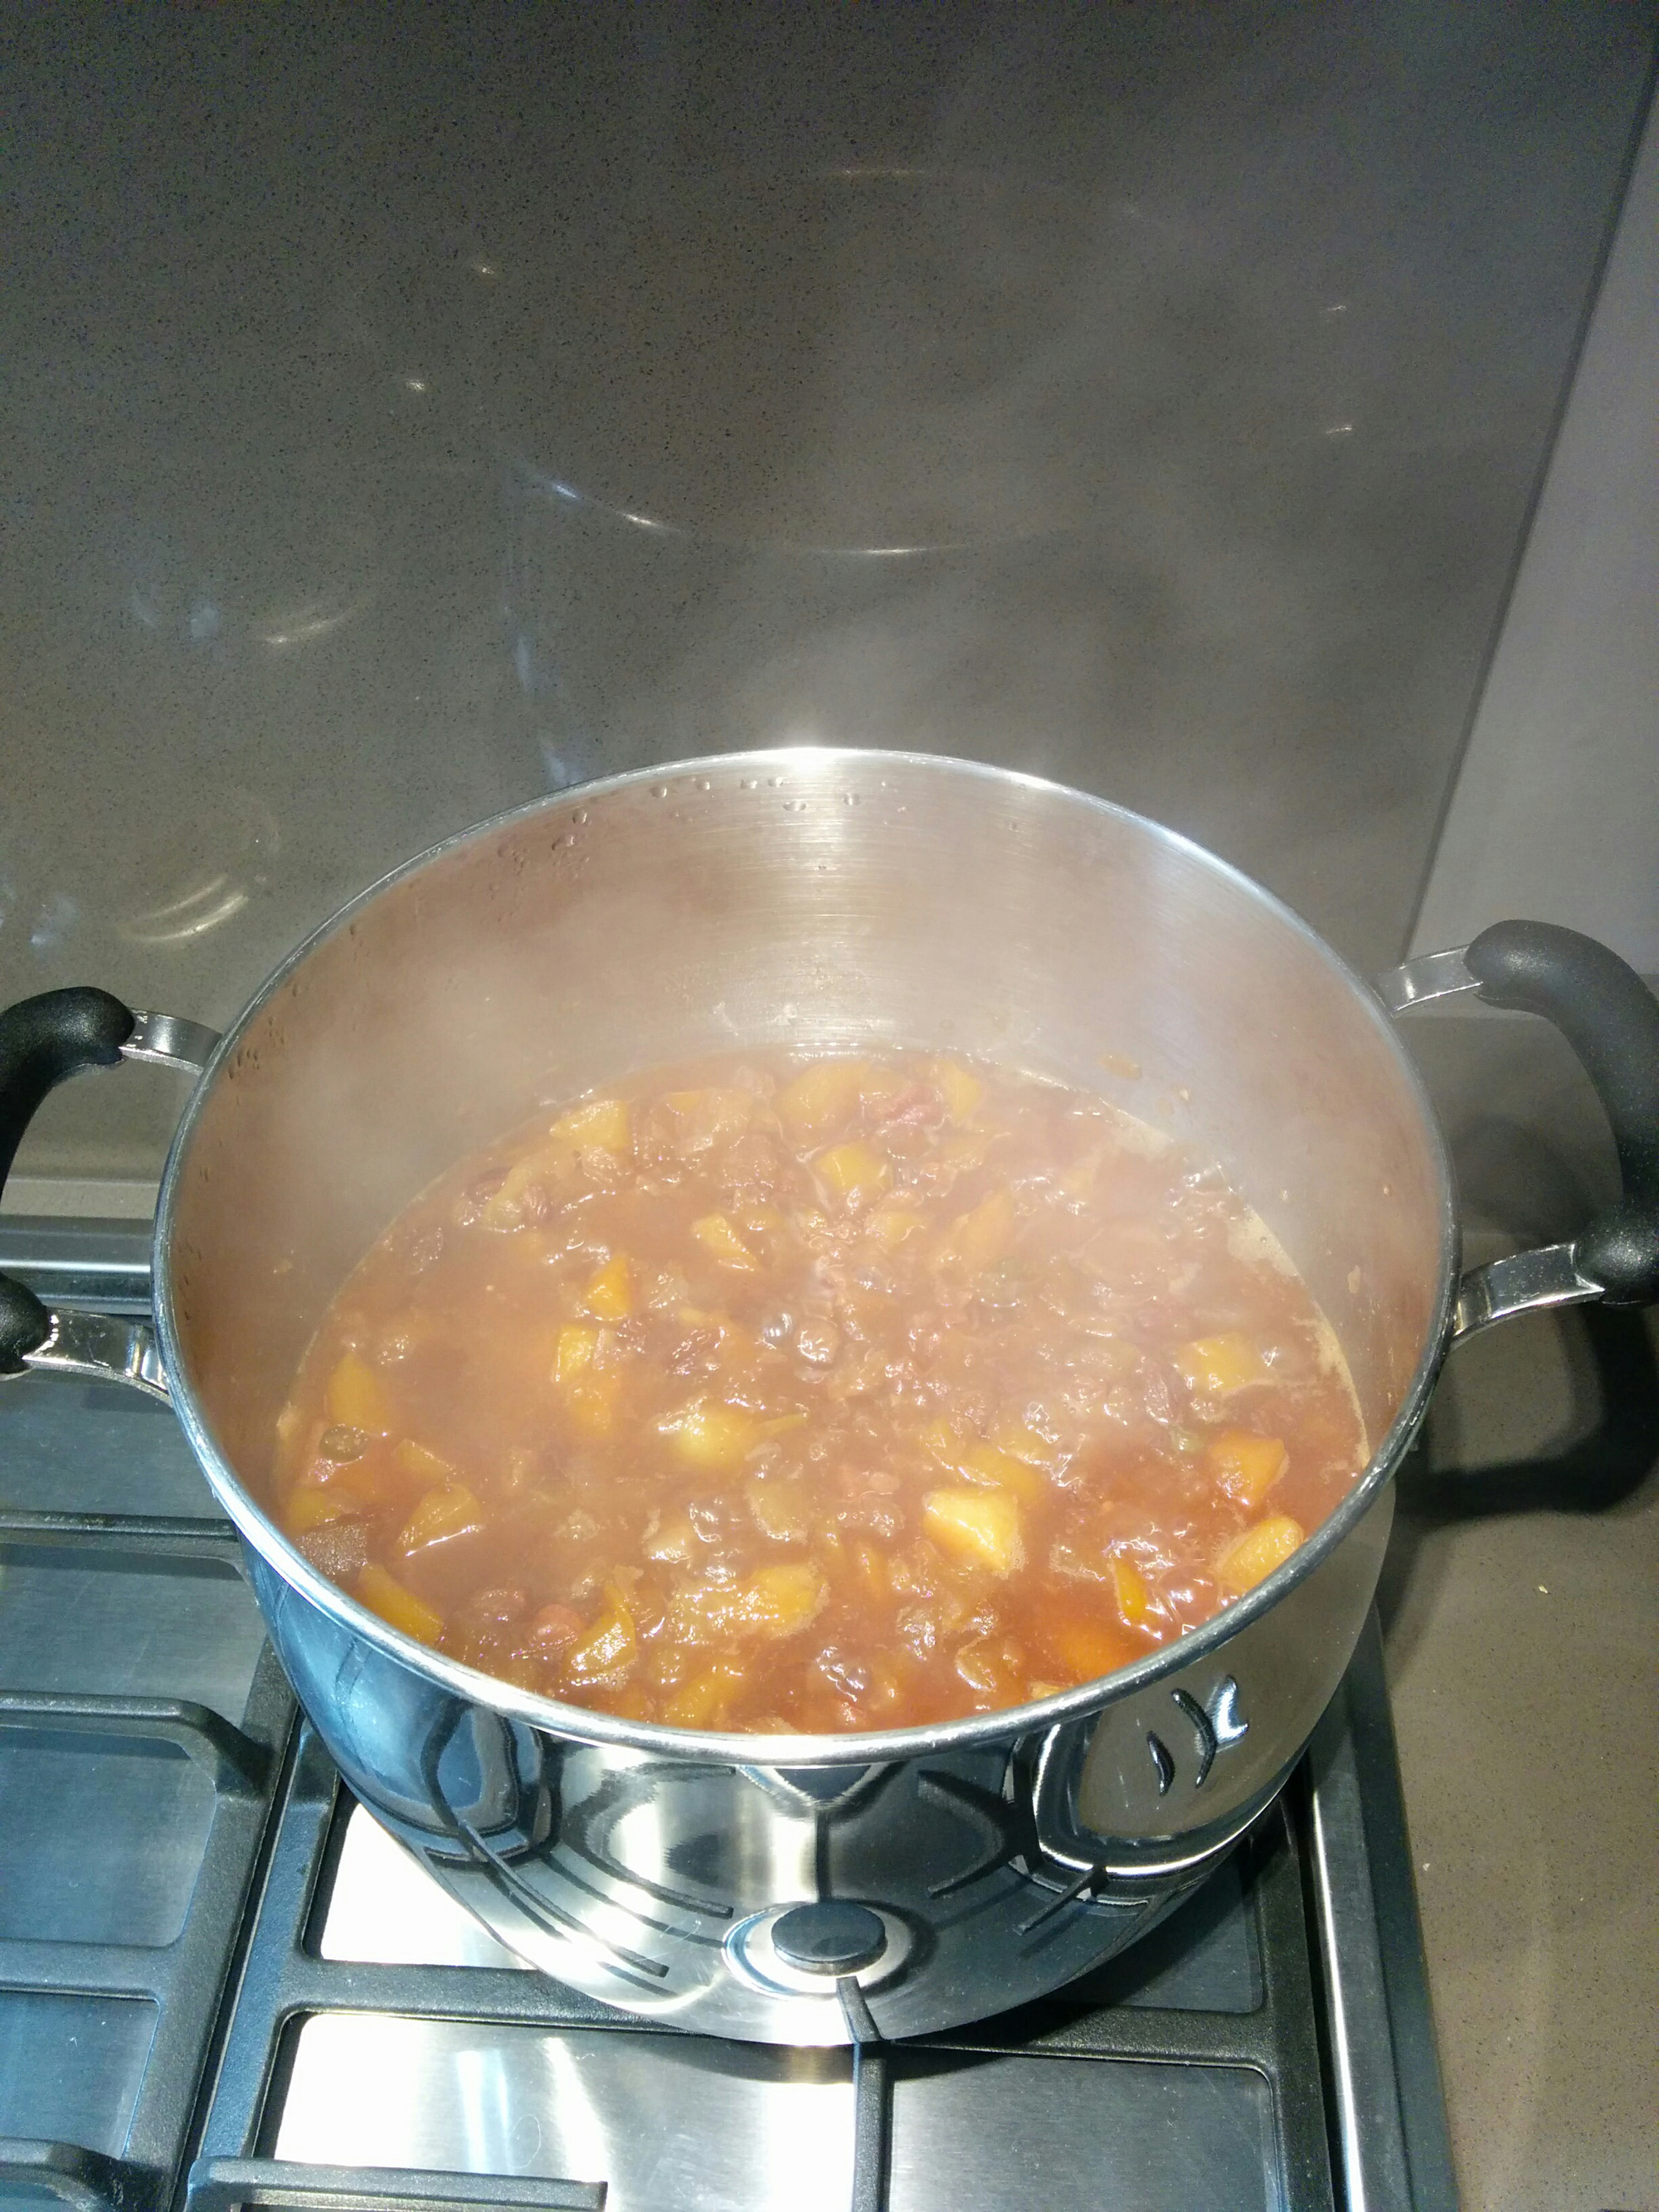 On the simmer